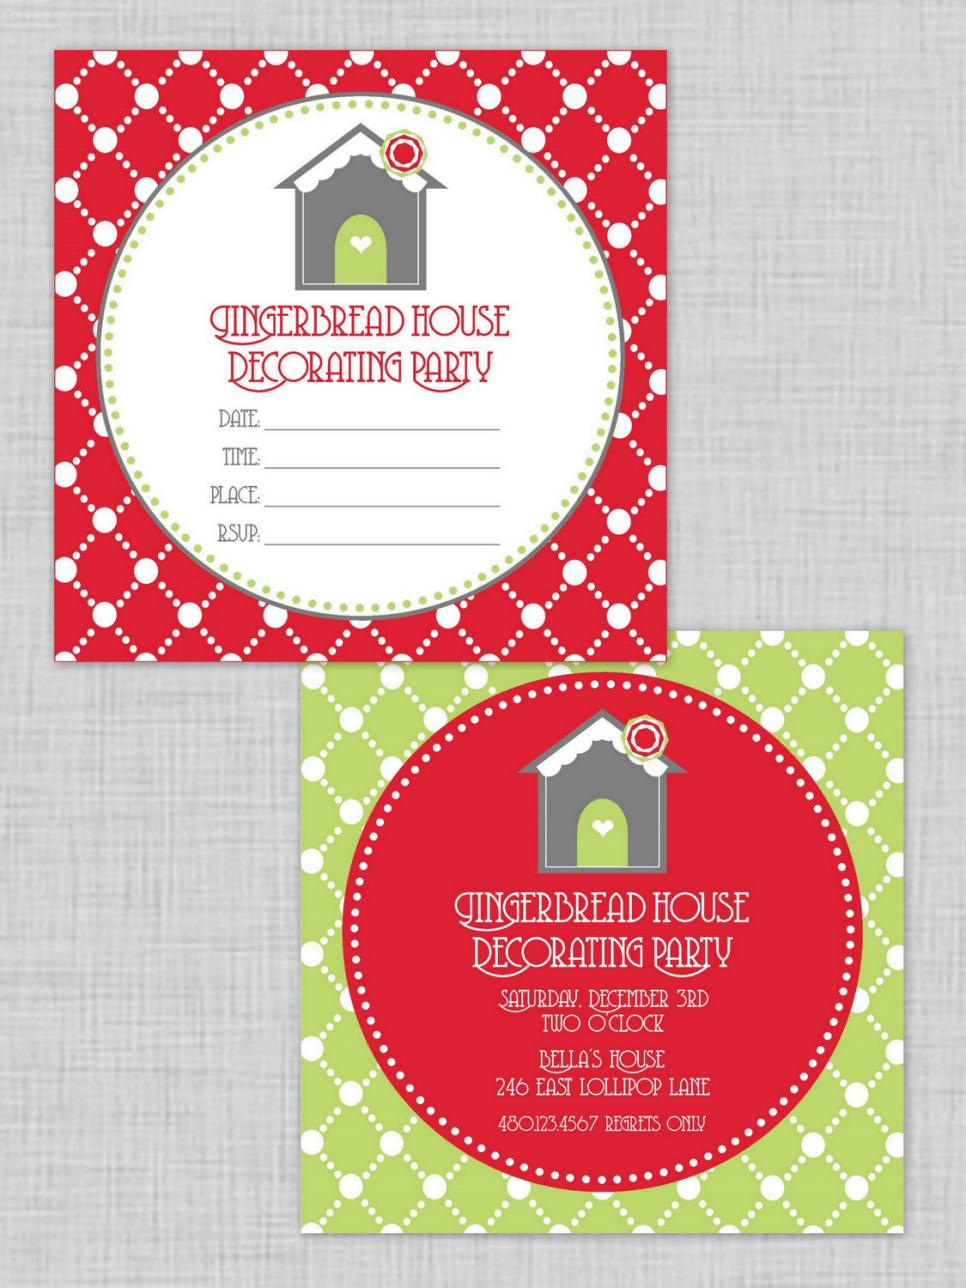 Gingerbread House Free Printables - A sweet goodbye